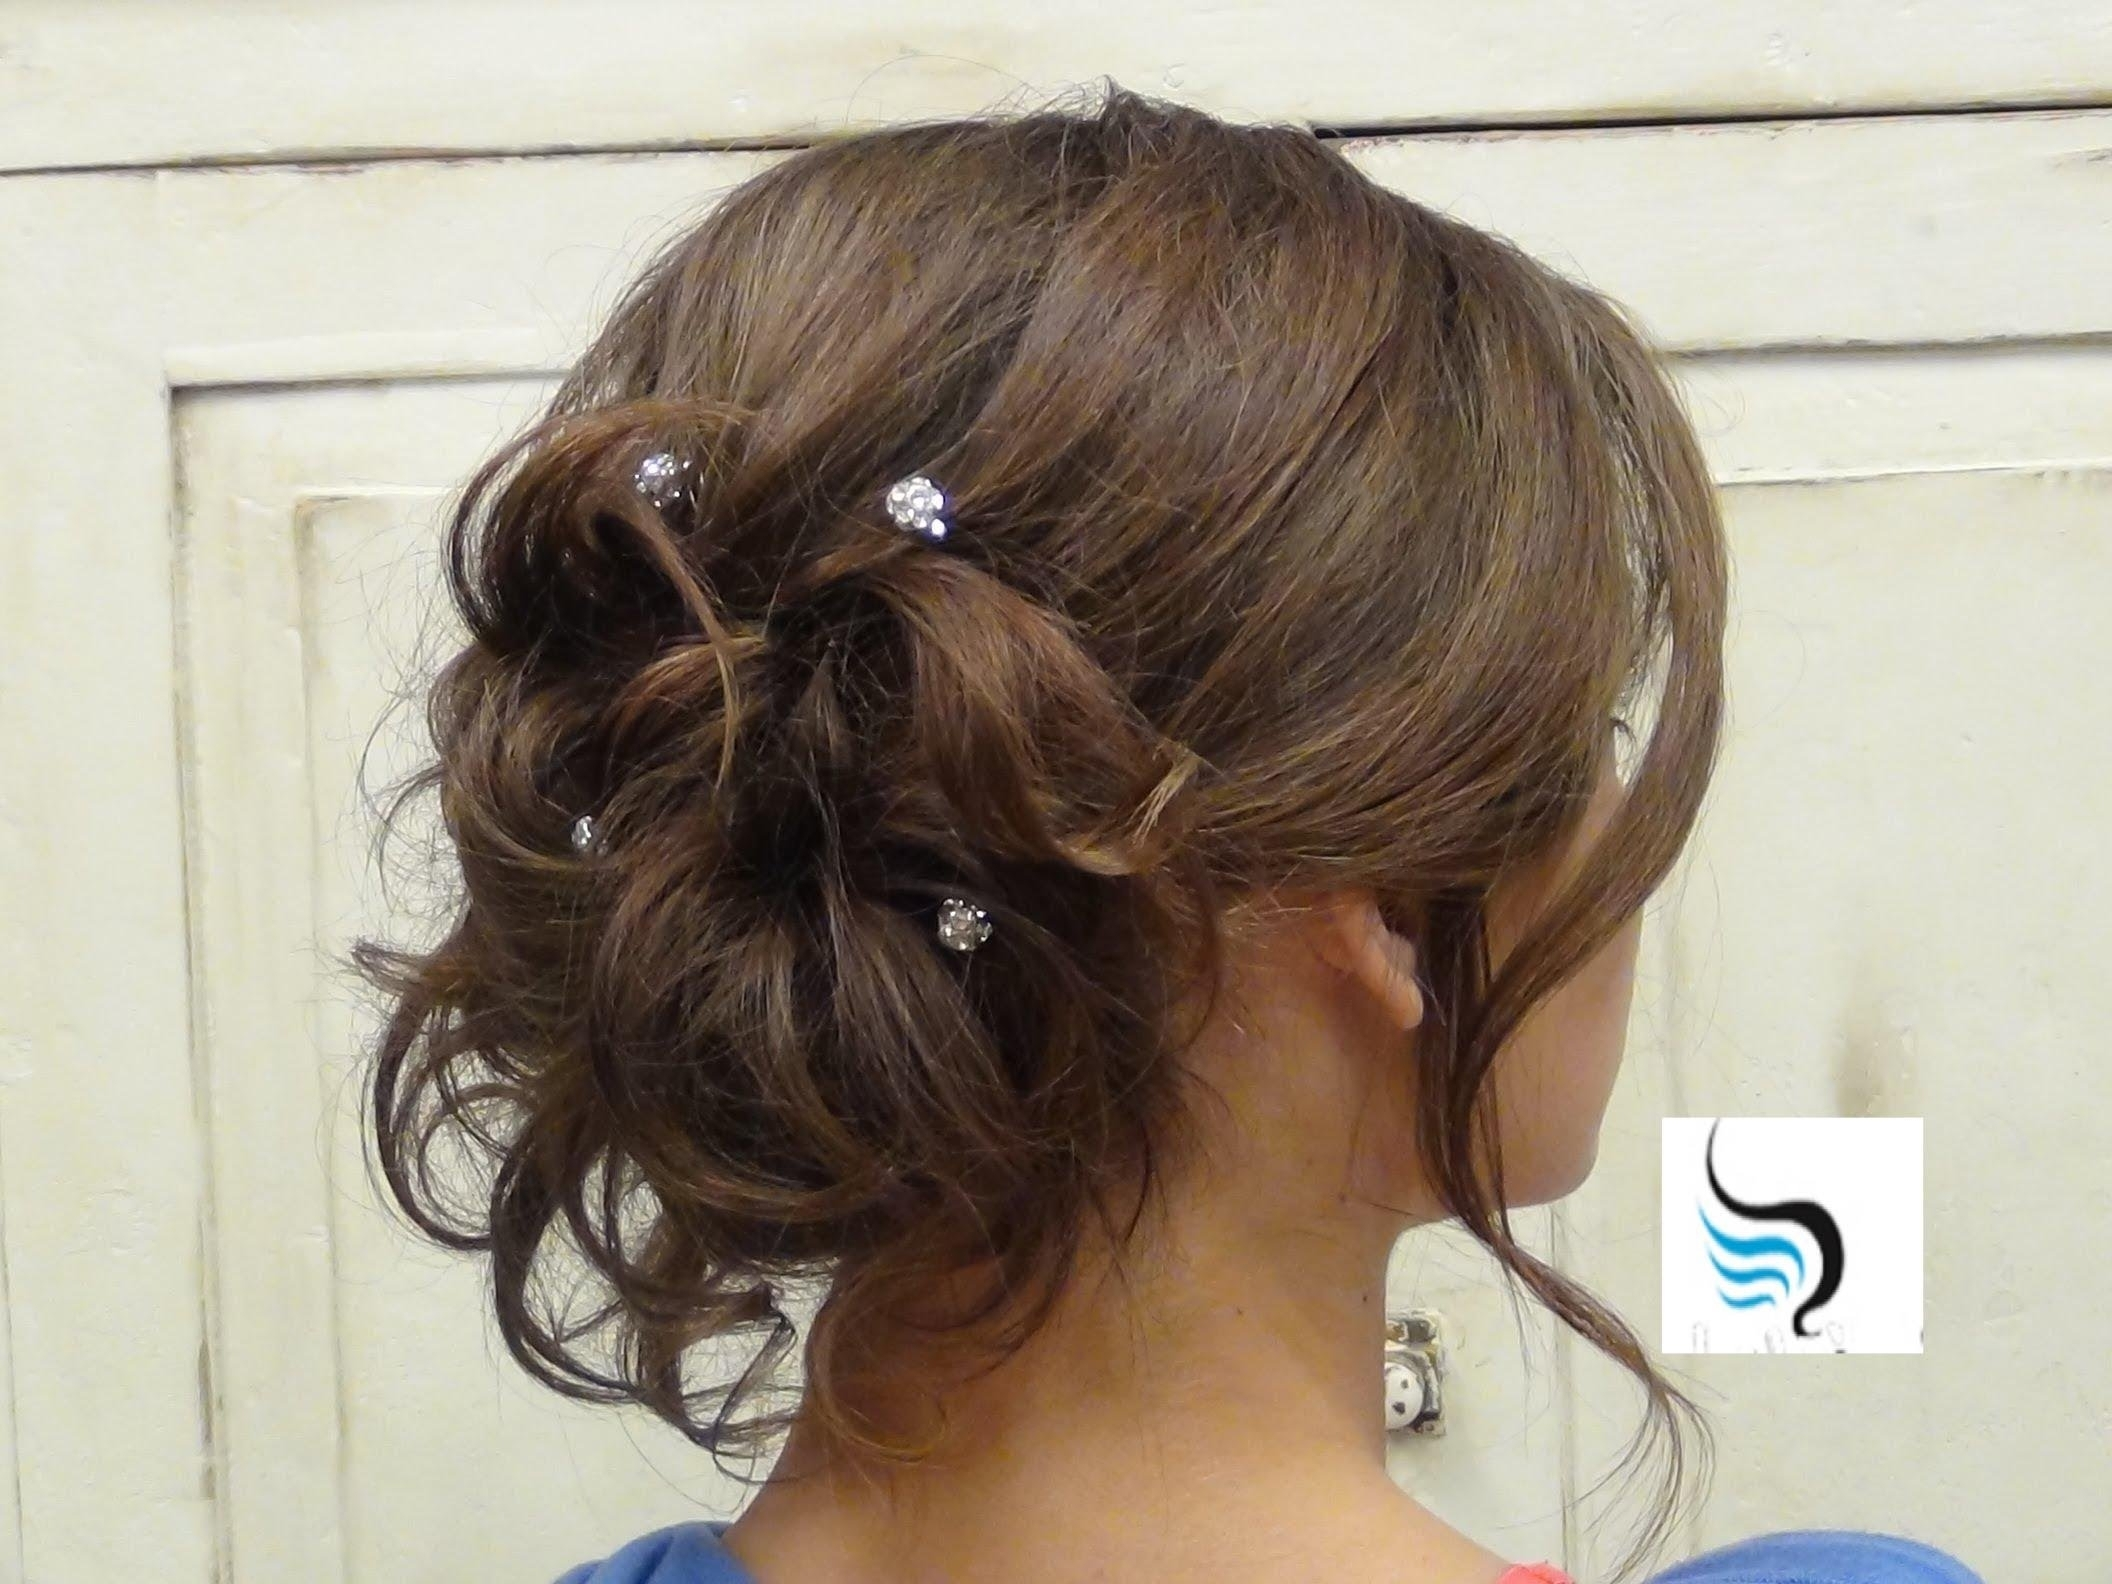 Soft Curled Updo) For Long Hair Prom Or Wedding Hairstyles – Youtube Pertaining To Messy Updo Hairstyles For Prom (View 4 of 15)